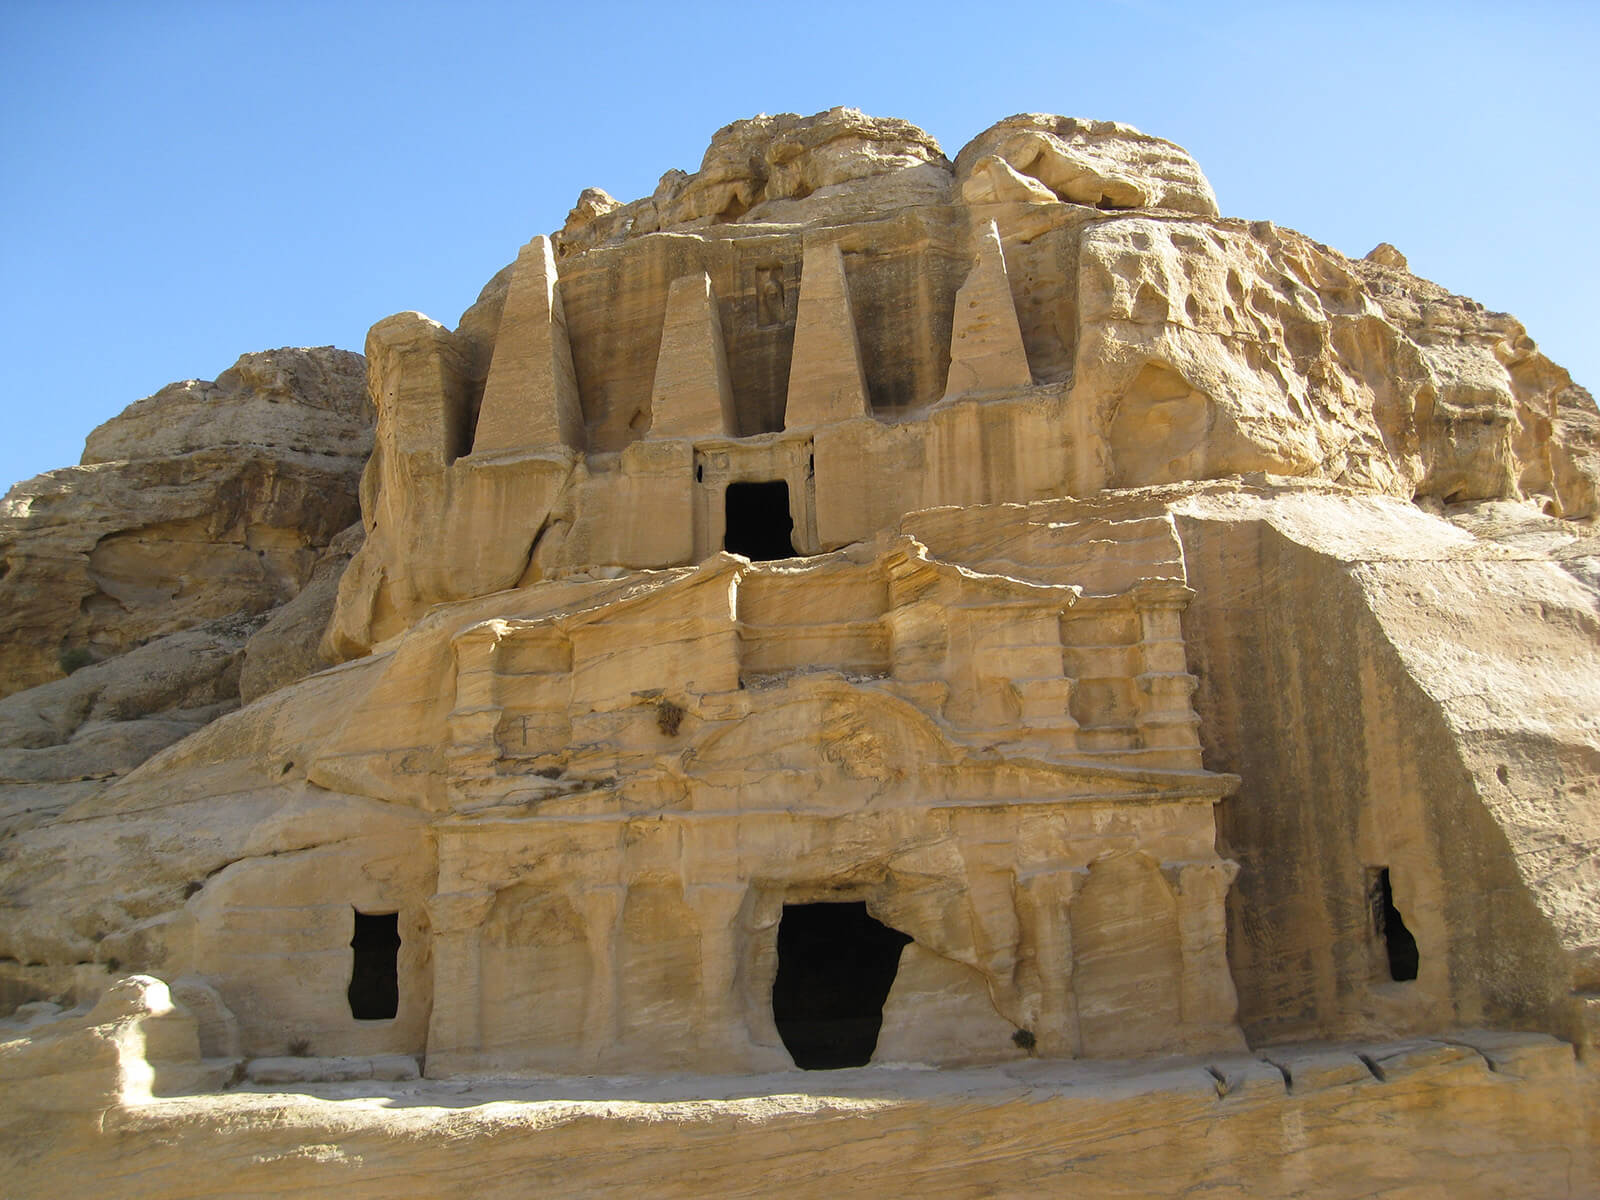 Petra is infamous for discriminating against white travelers